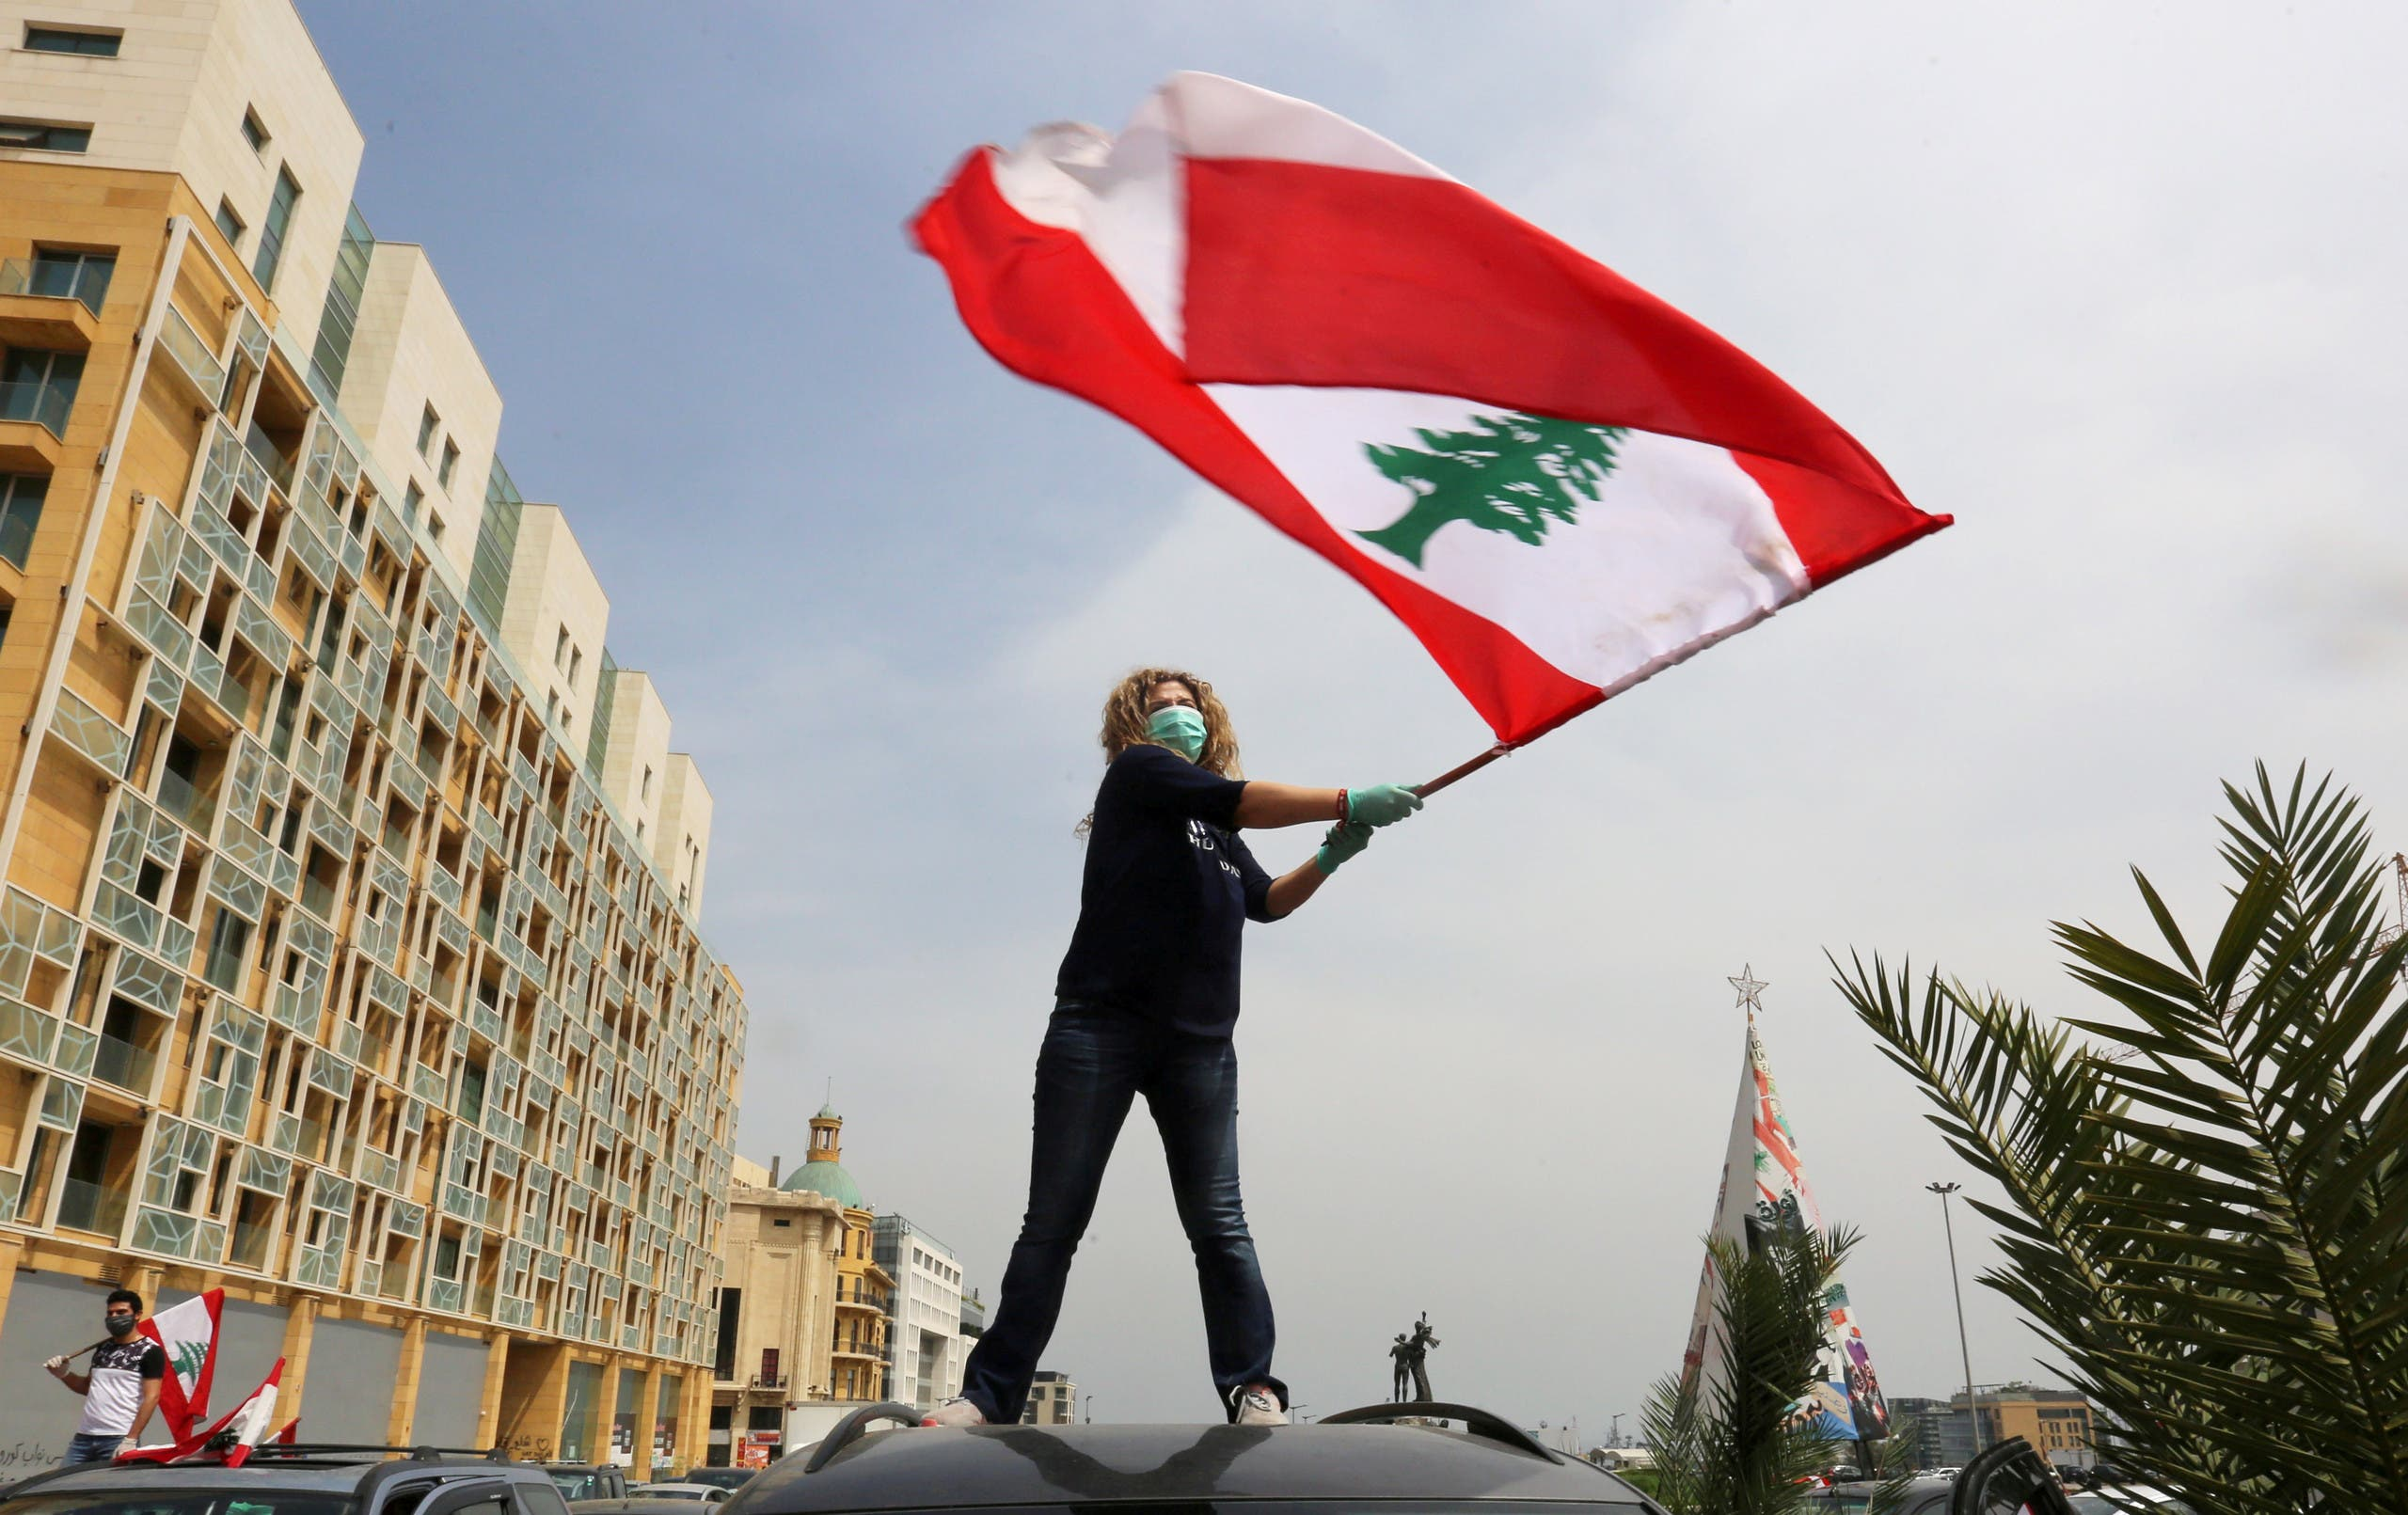 An anti-government demonstrator holds a Lebanese flag as she stands on top of her car in Beirut. (Reuters)